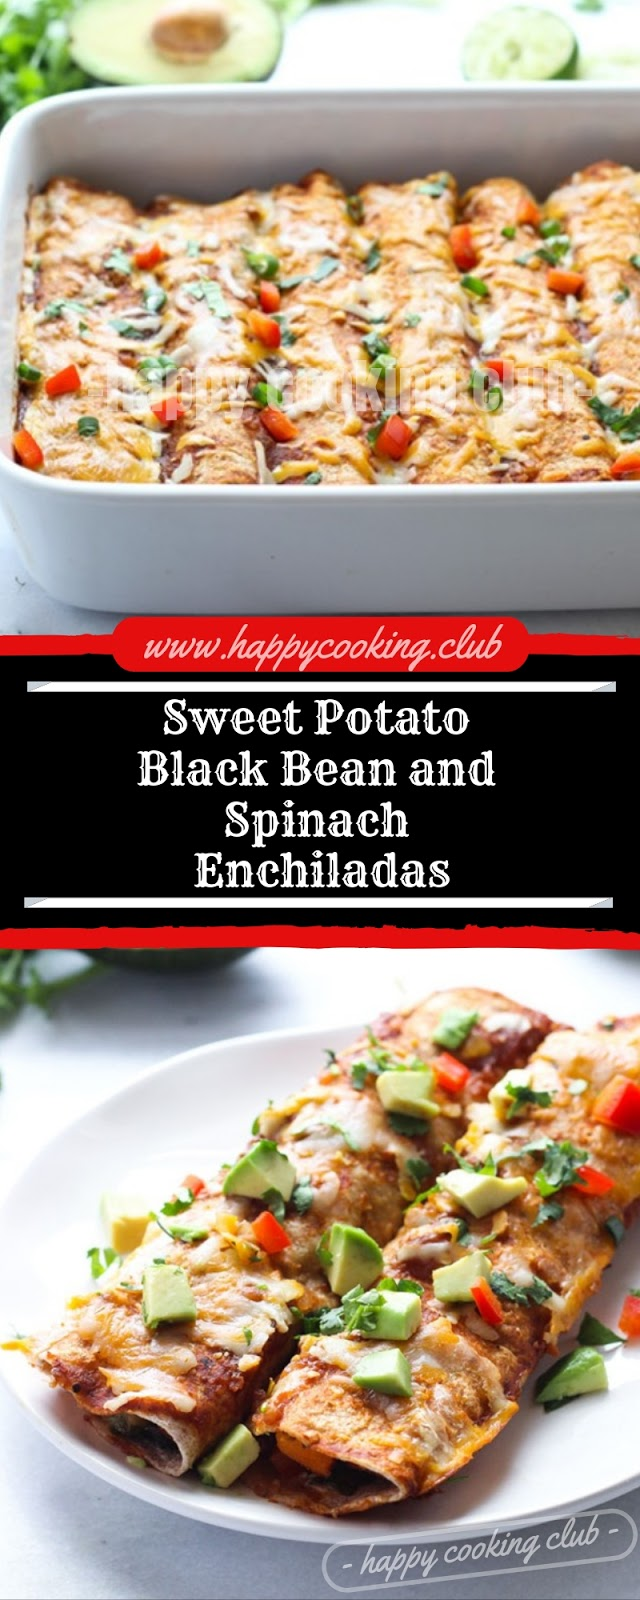 Sweet Potato Black Bean and Spinach Enchiladas